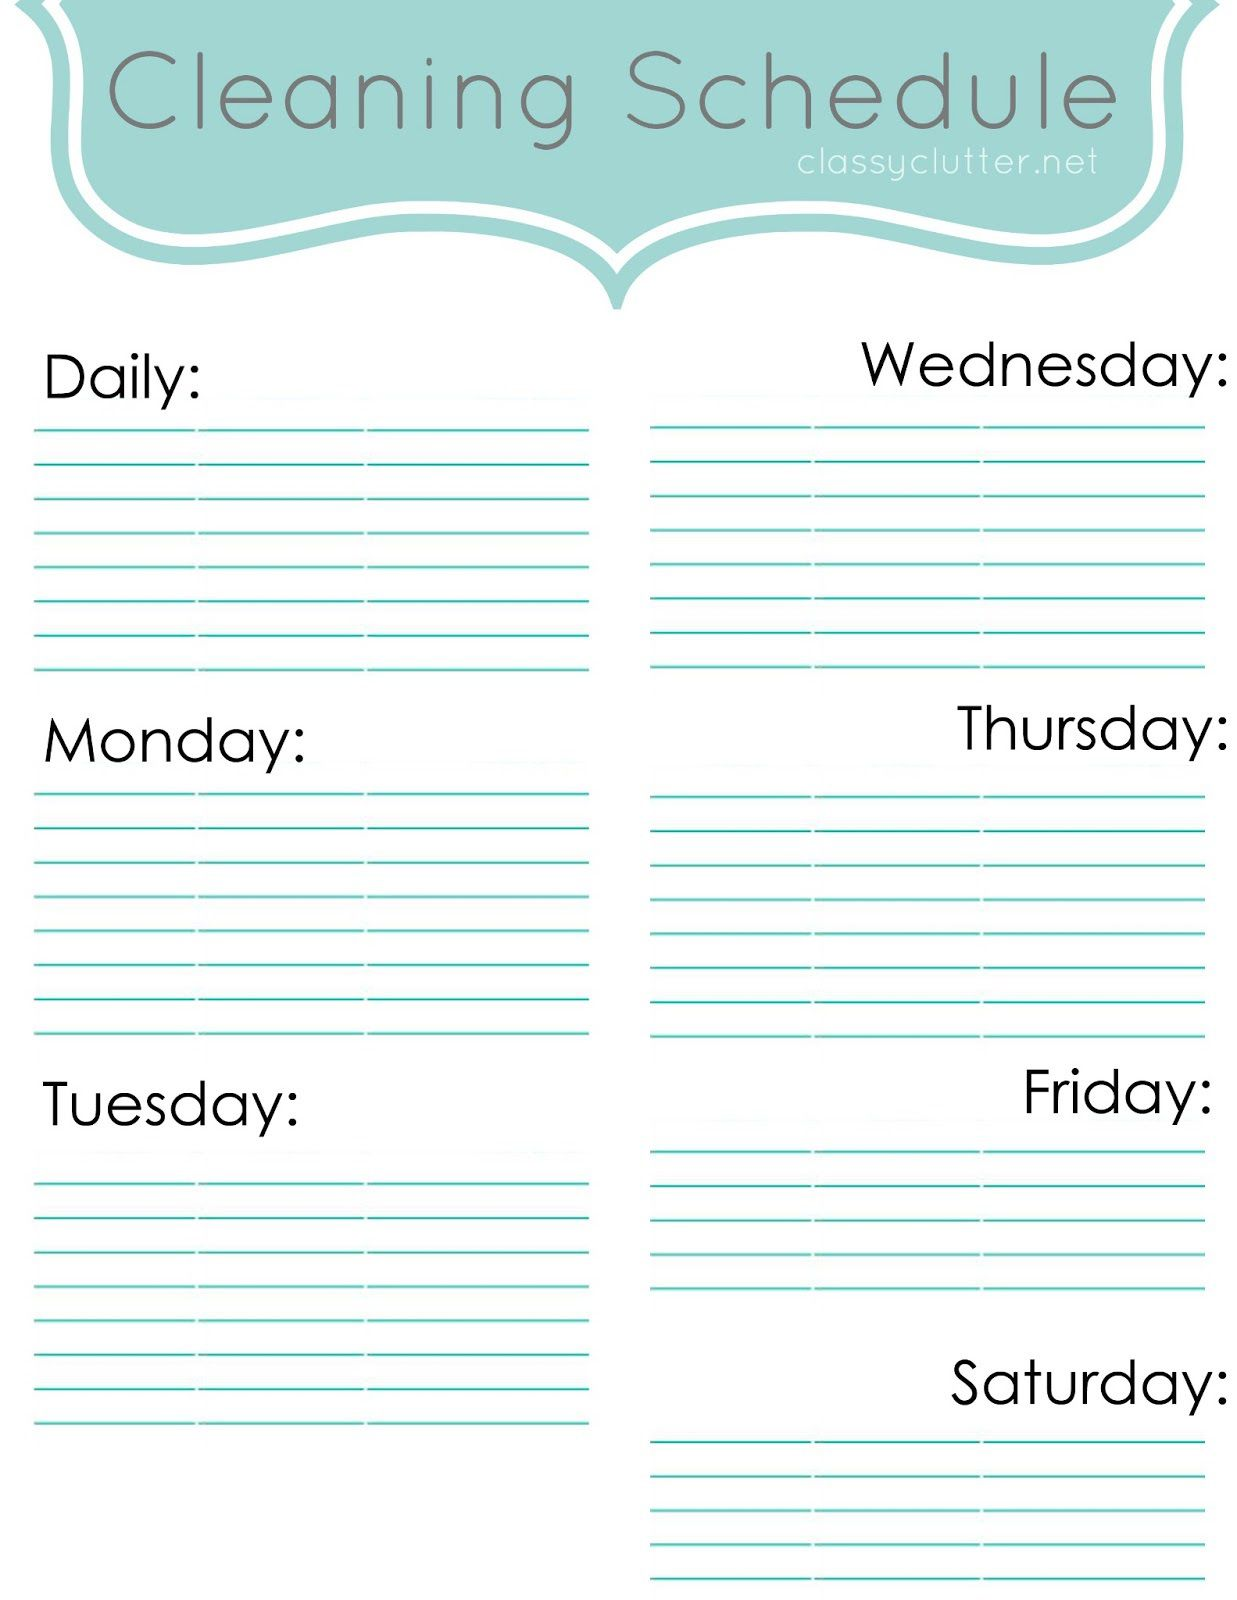 009 Striking Weekly Cleaning Schedule Format Highest Clarity  Template Free SampleFull